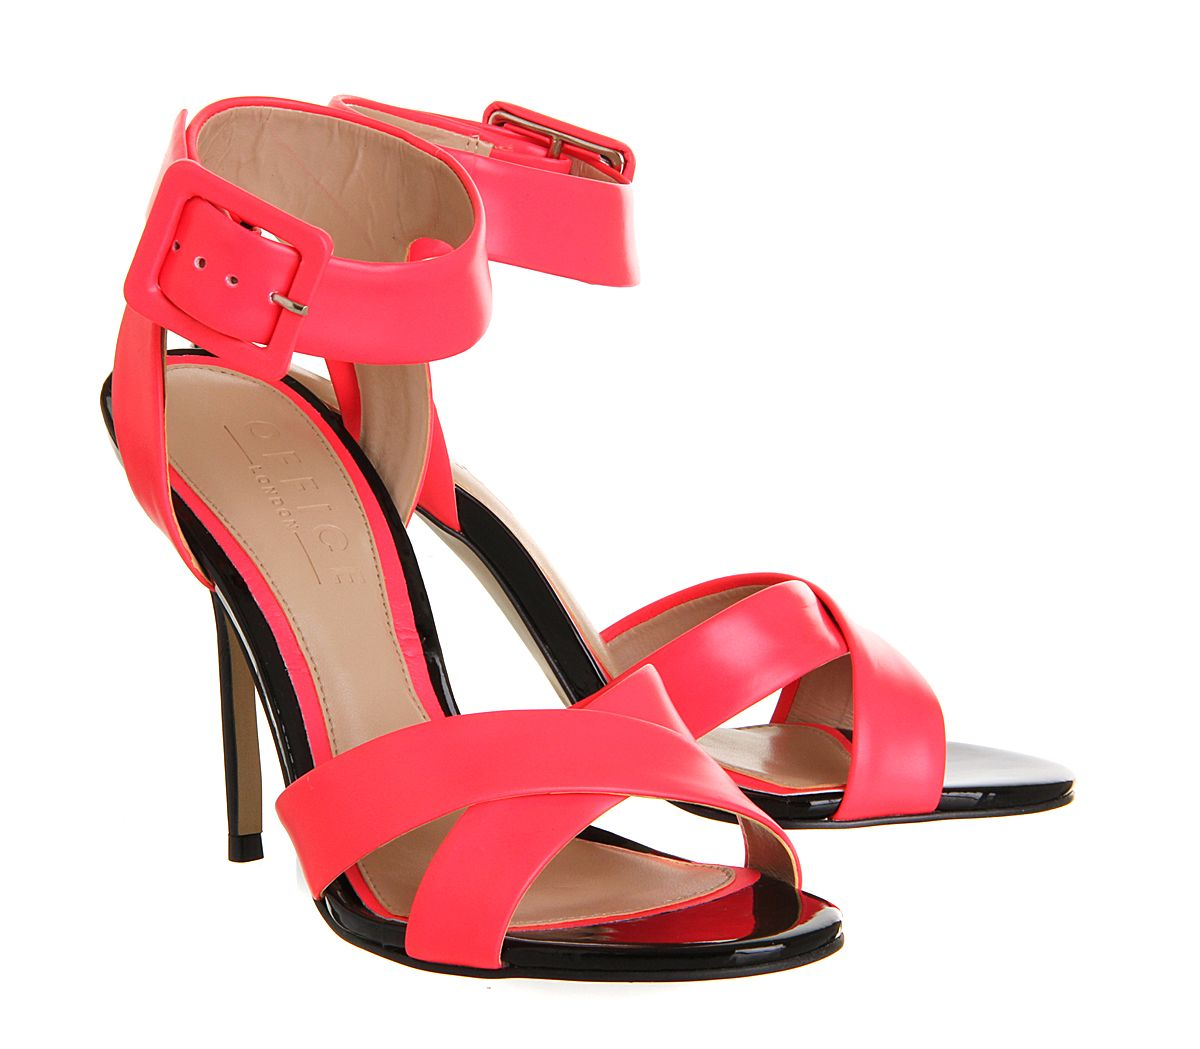 Solo Single Sole Sandal | Leather high heels, Sandals, Pink